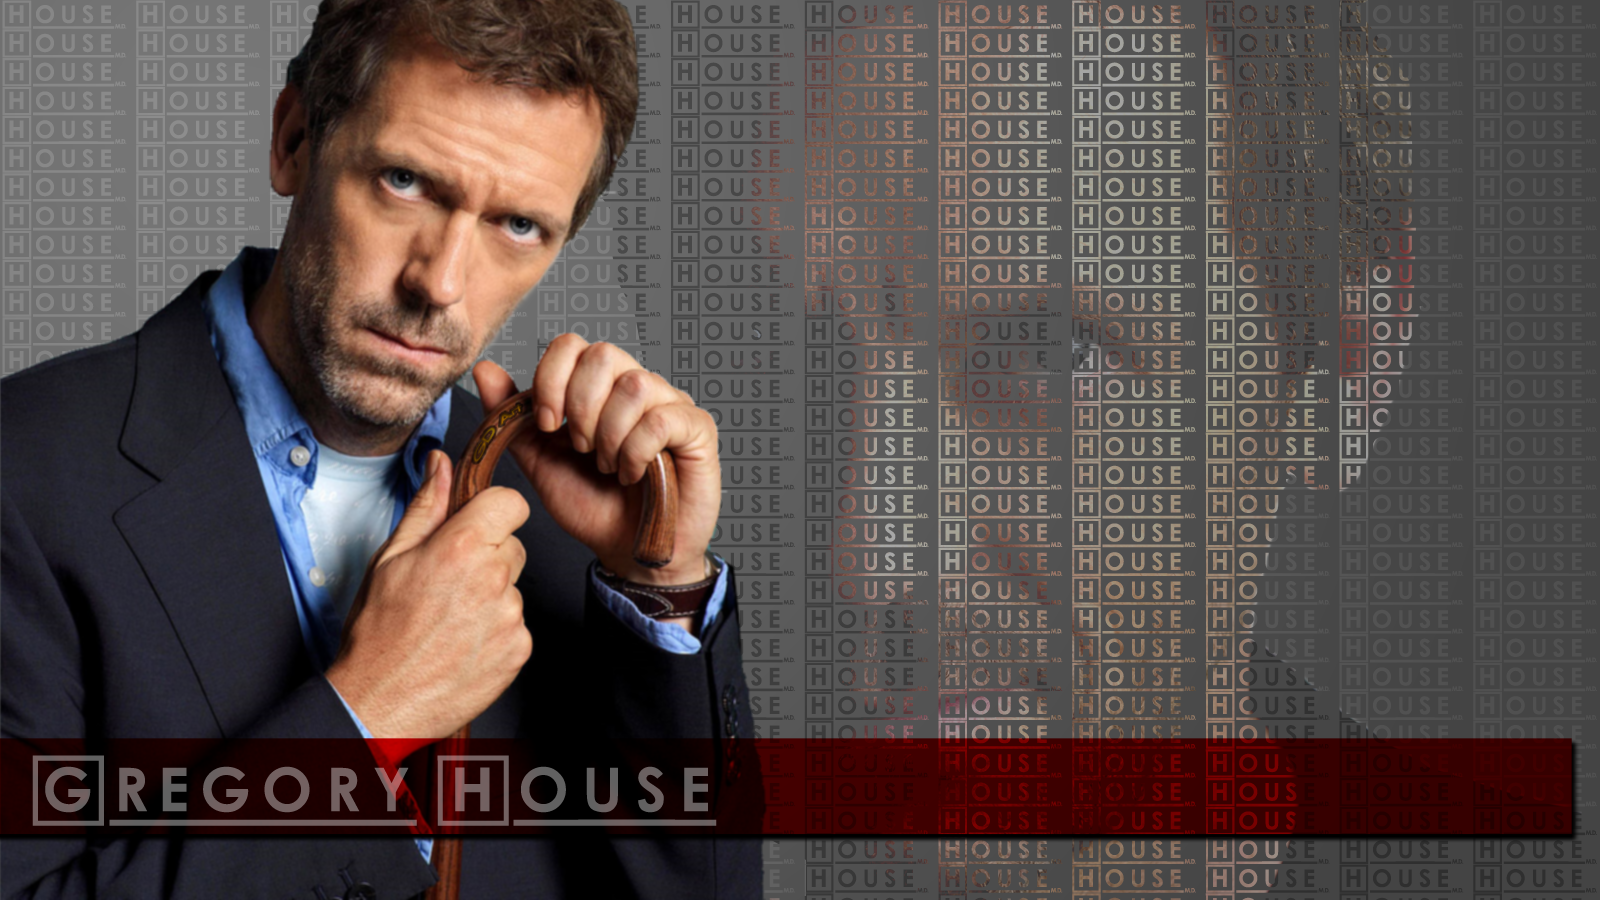 Dr Gregory House Wallpaper by gondragon13 on deviantART